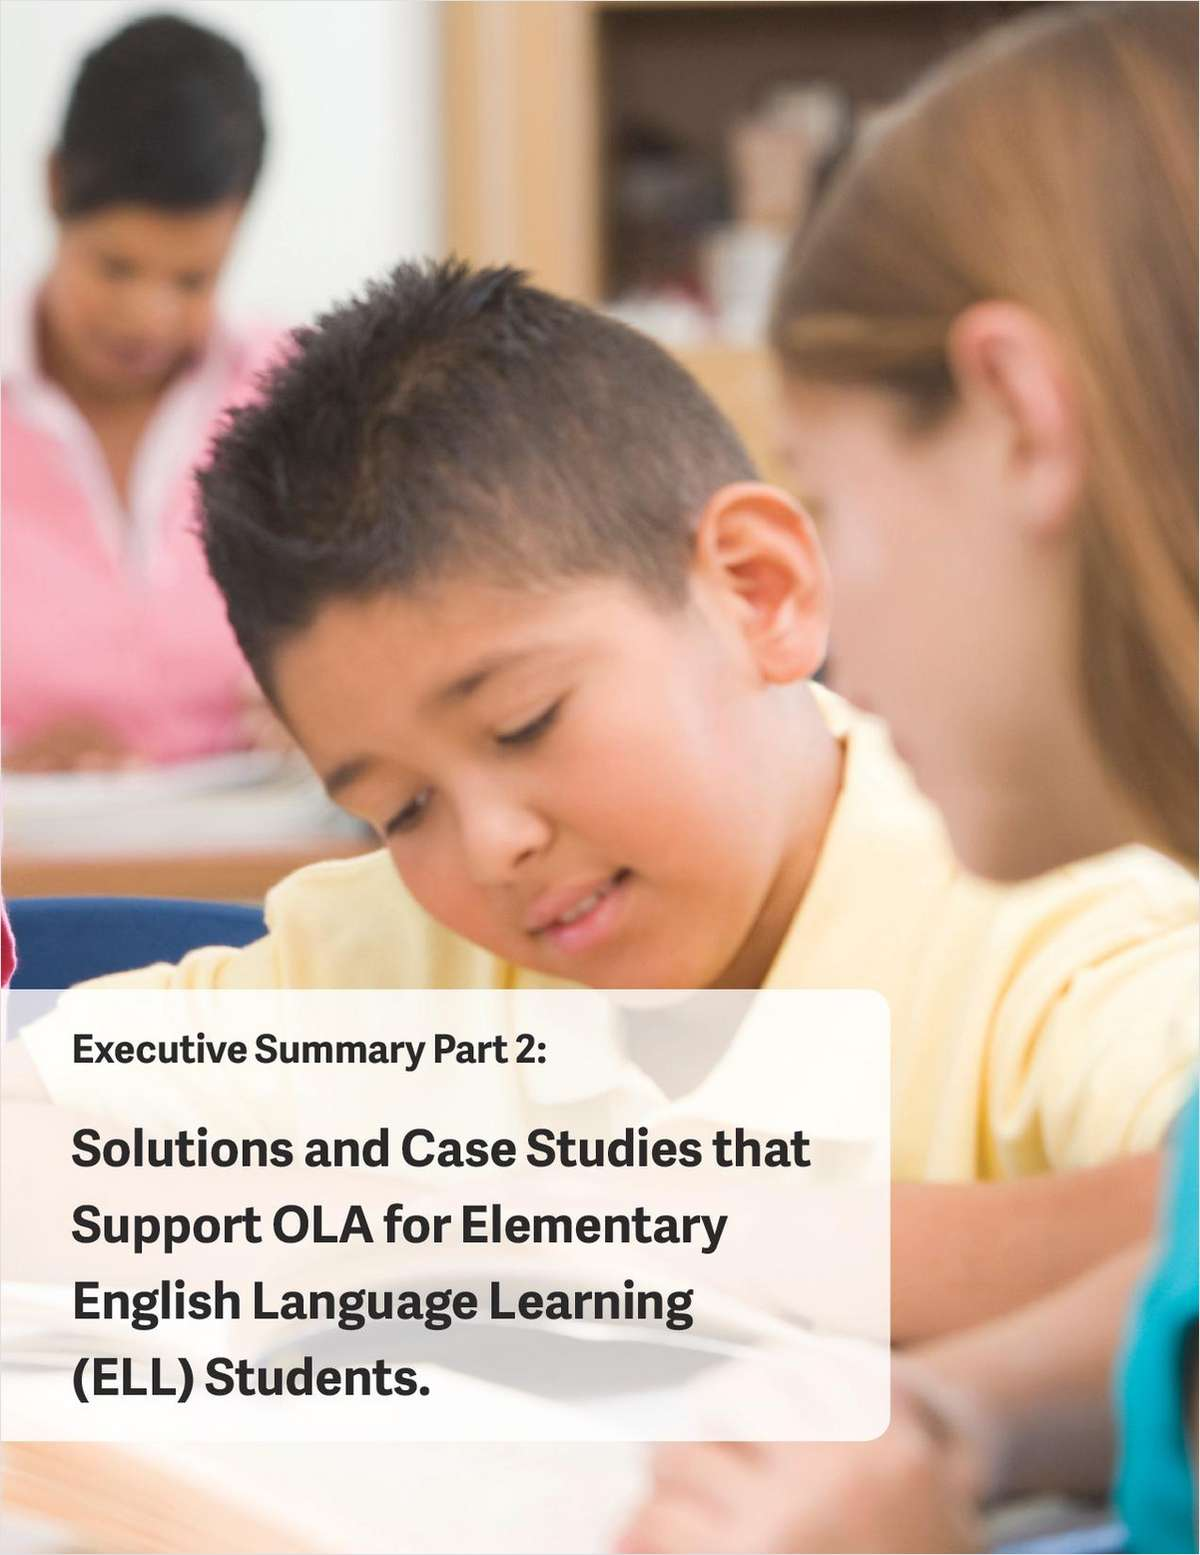 Solutions and Case Studies that Support OLA for Elementary English Language  Learning (ELL) Students